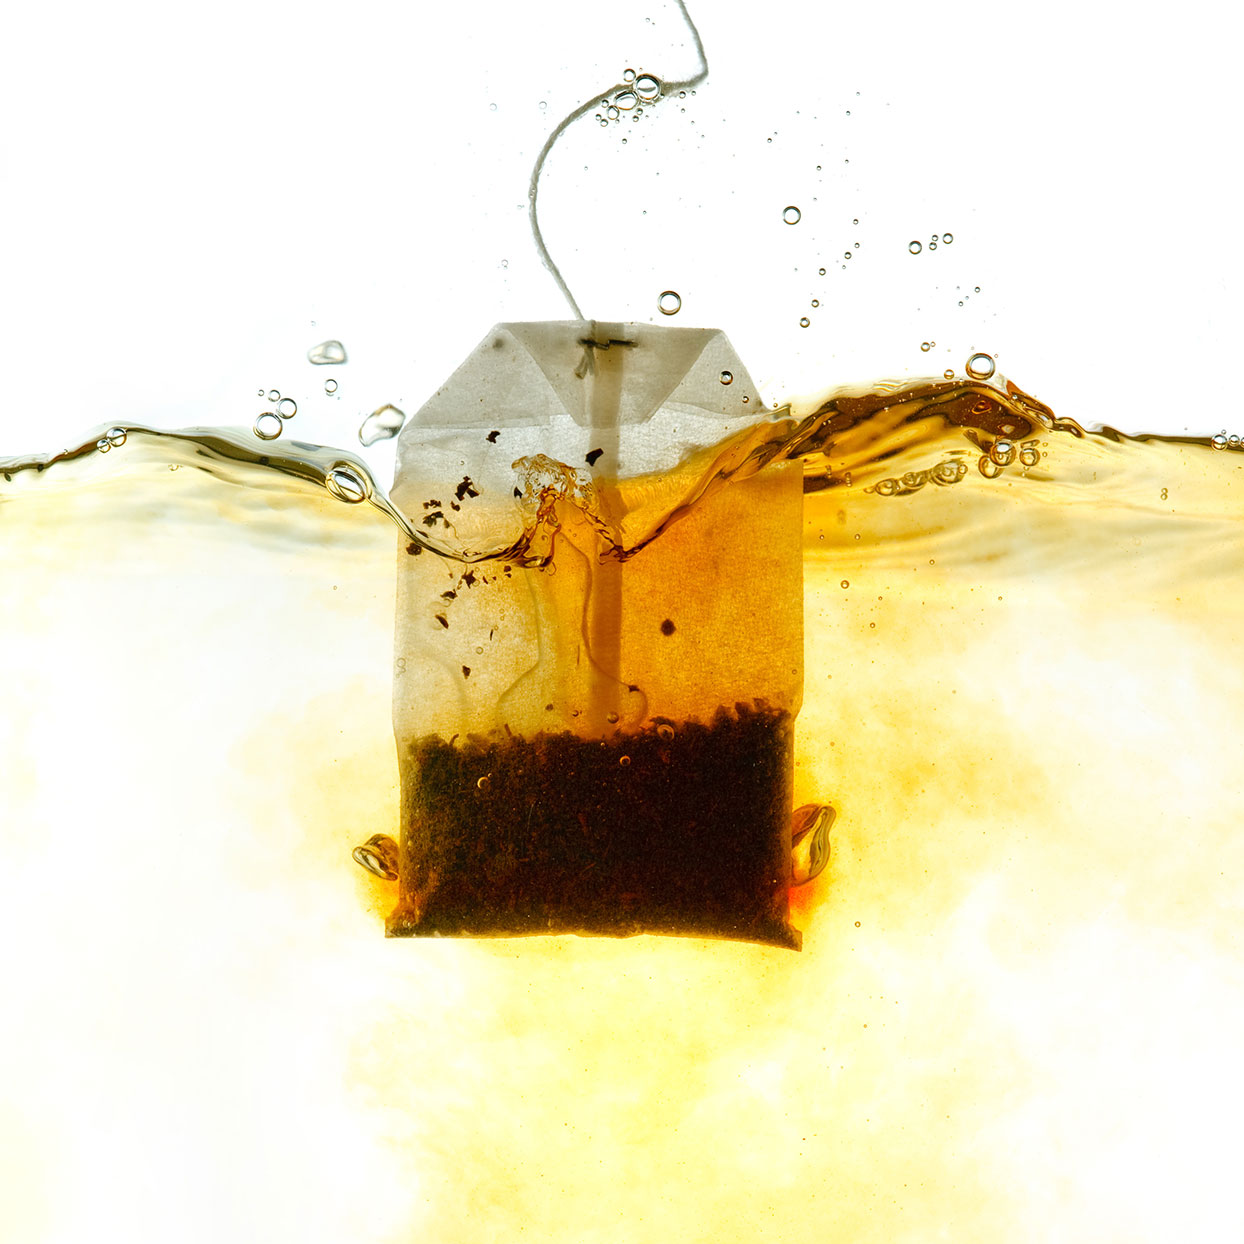 tea bag being dunked in water